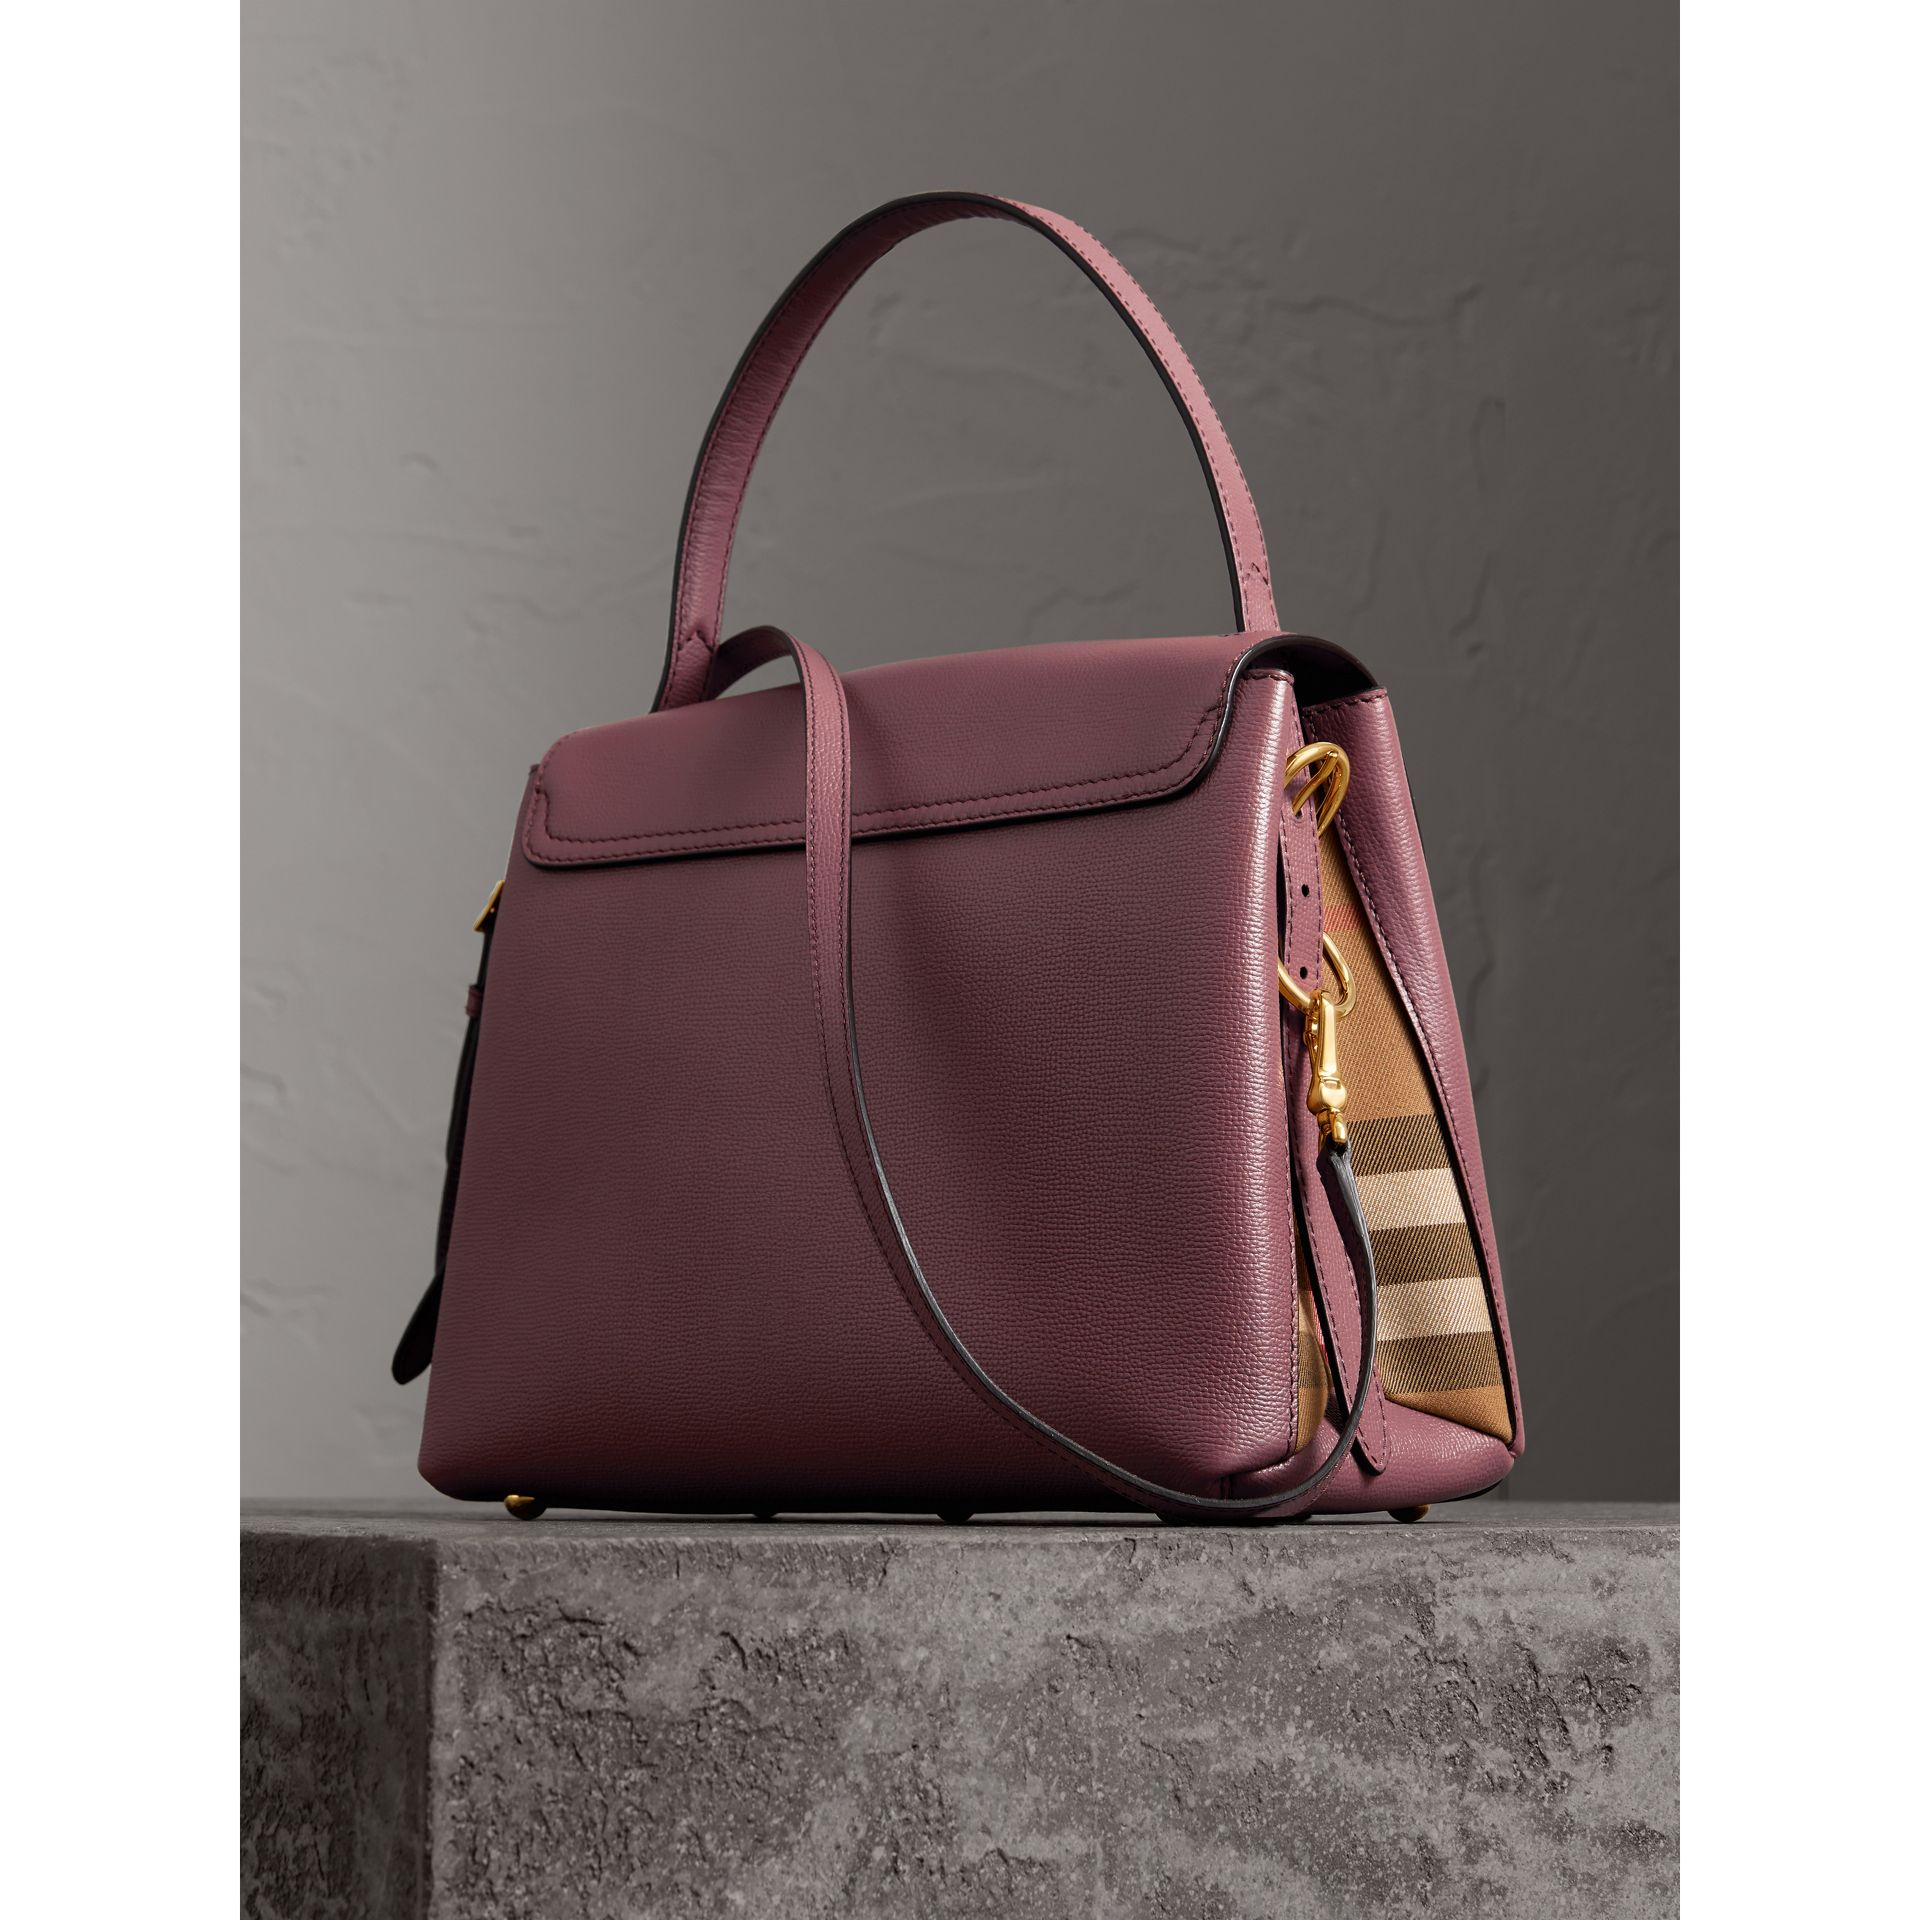 Medium Grainy Leather and House Check Tote Bag in Mahogany Red - Women | Burberry United States - gallery image 4